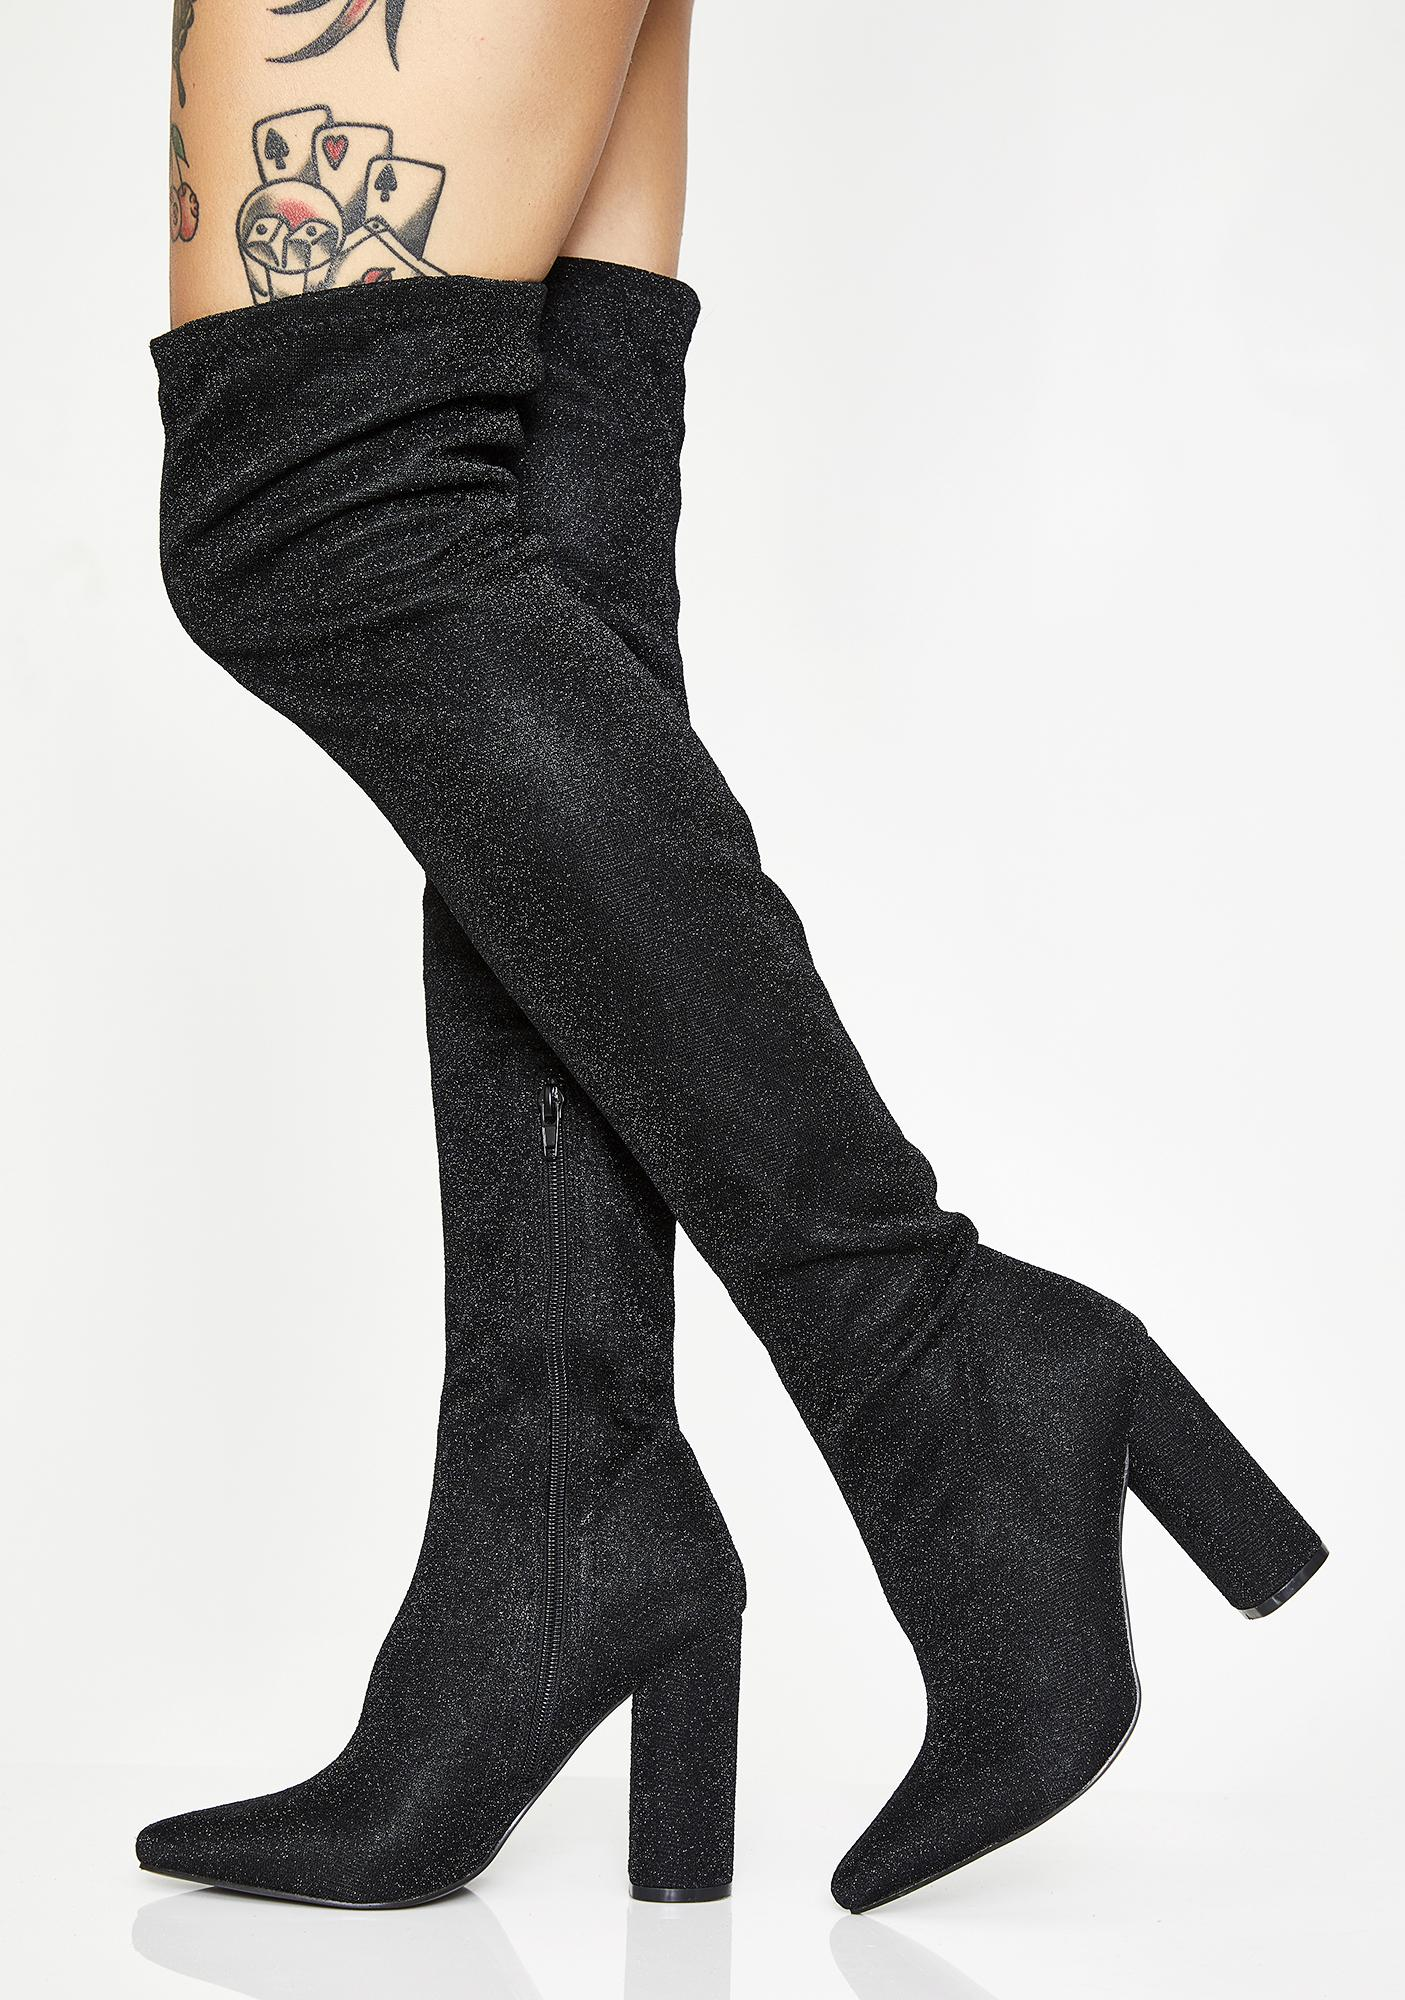 Glambition Thigh High Boots